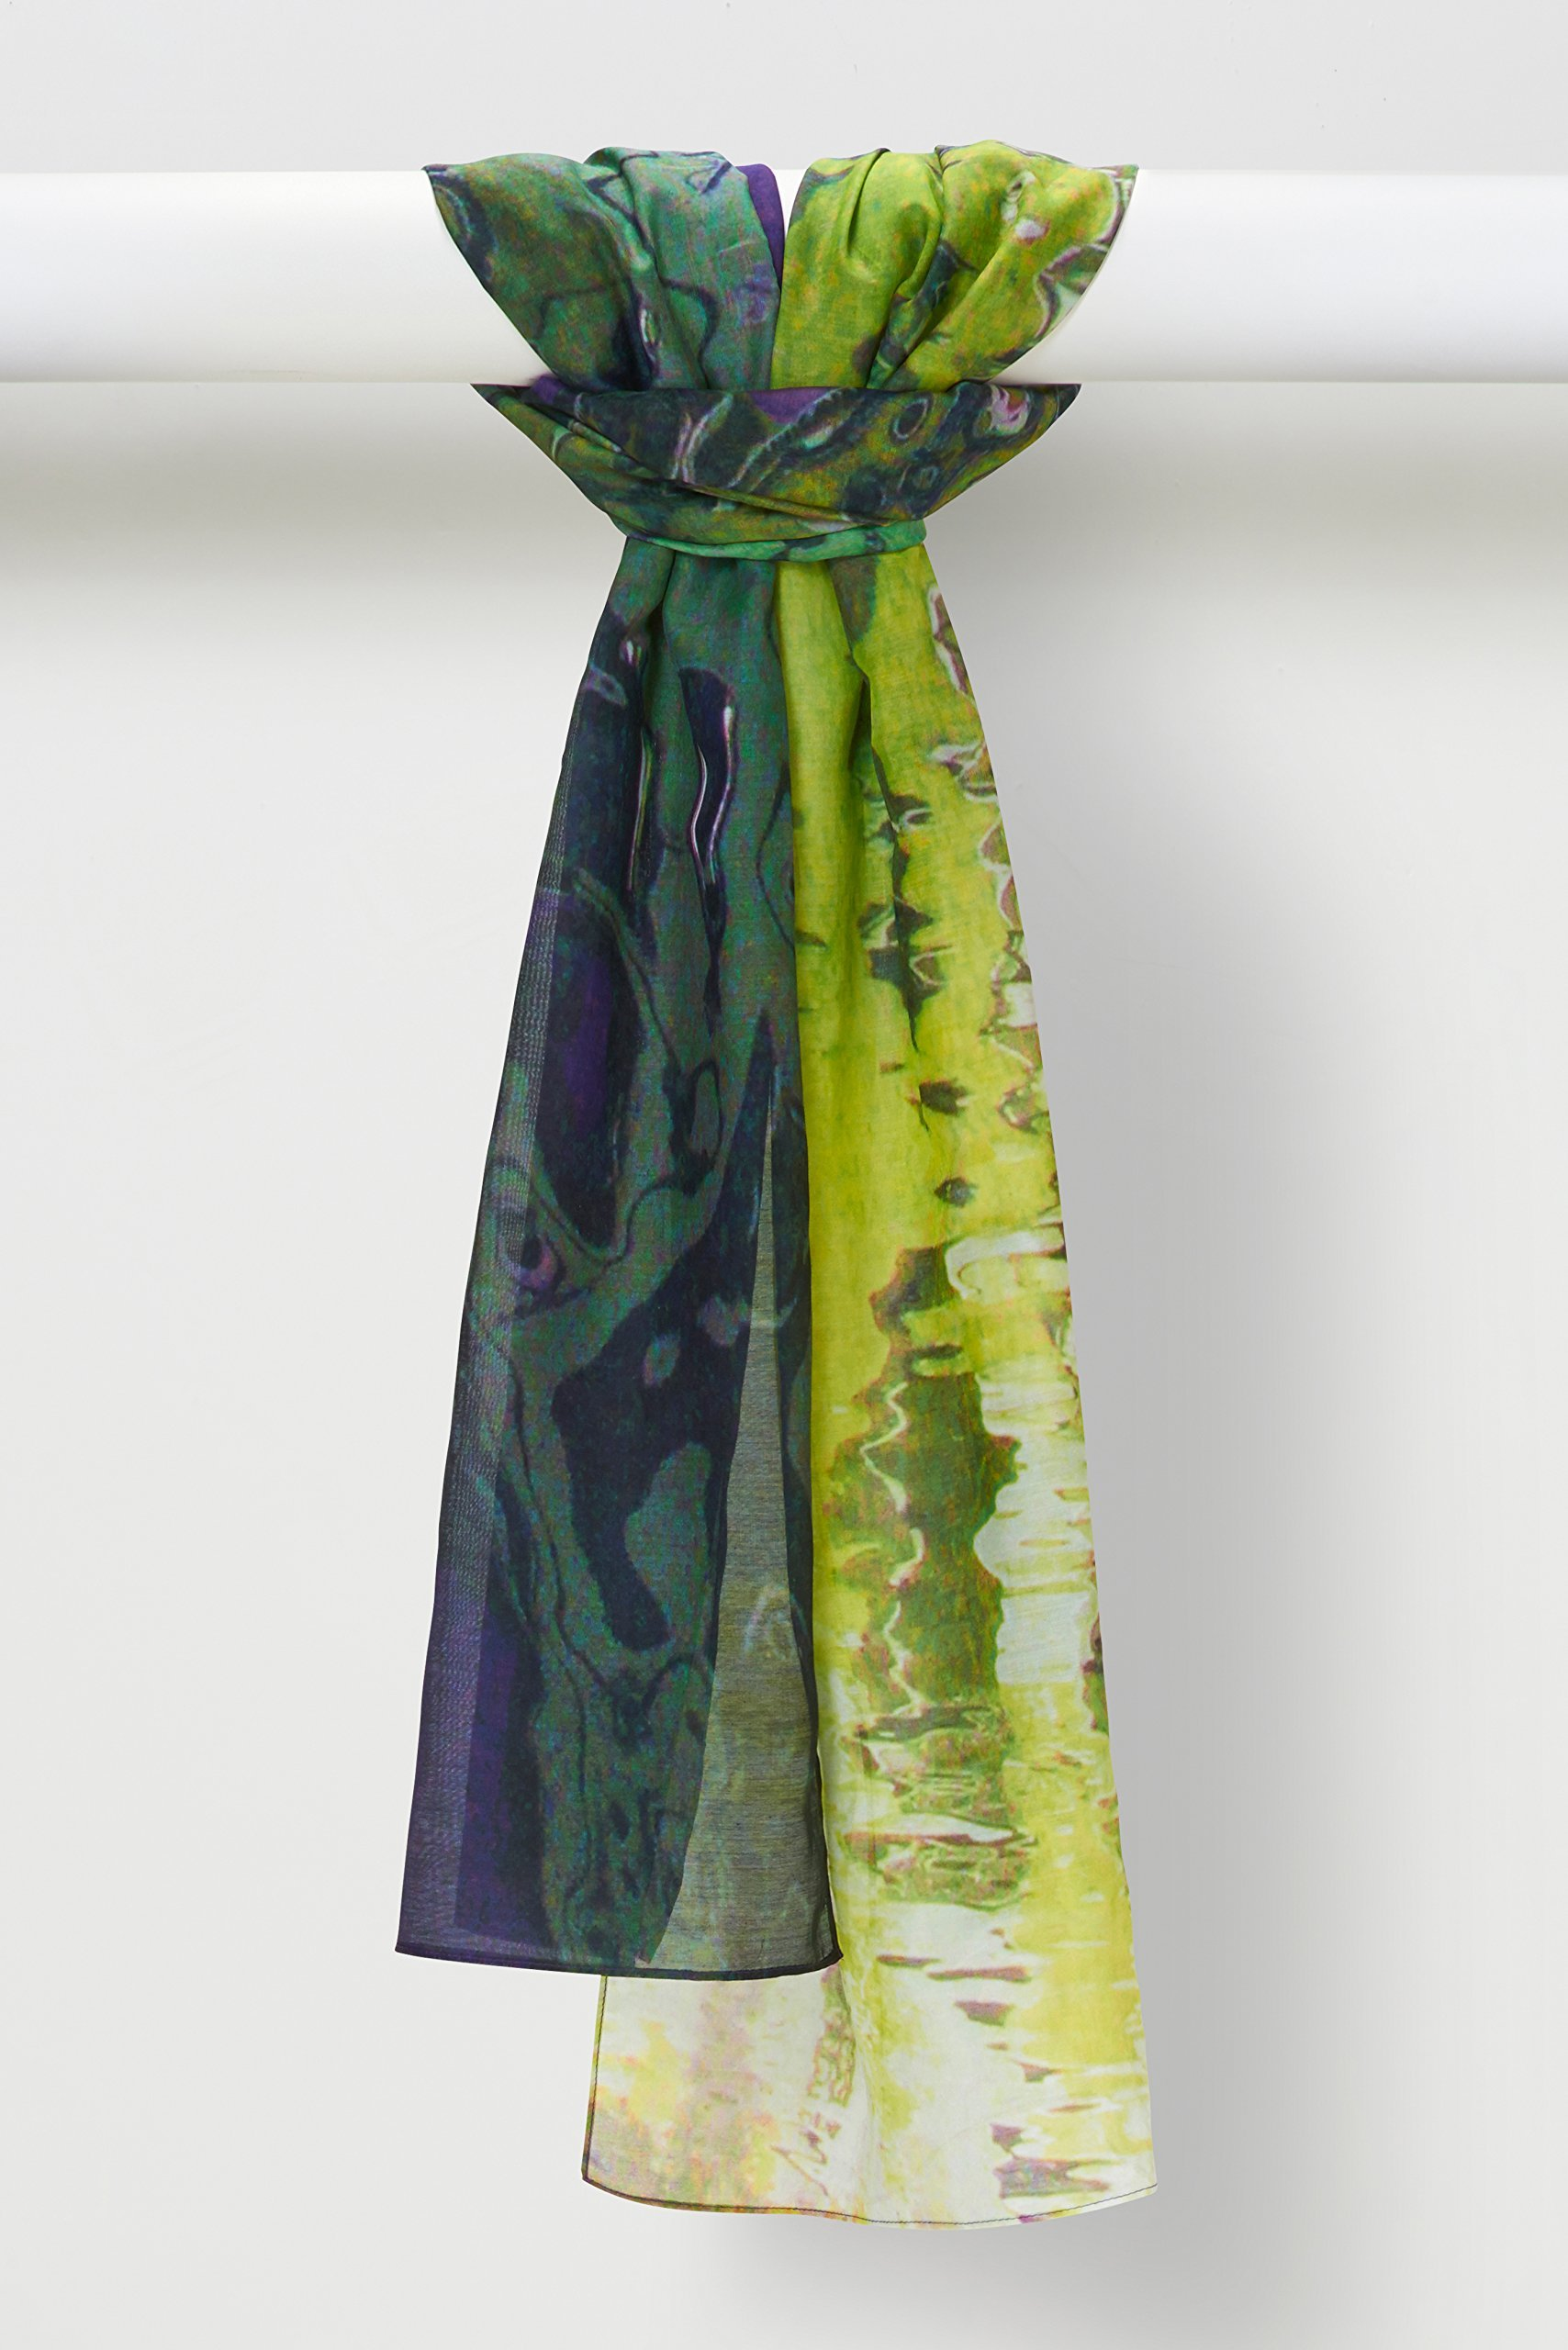 Venetian Light Silk-Cotton Voile Shawl in Eggplant Lime